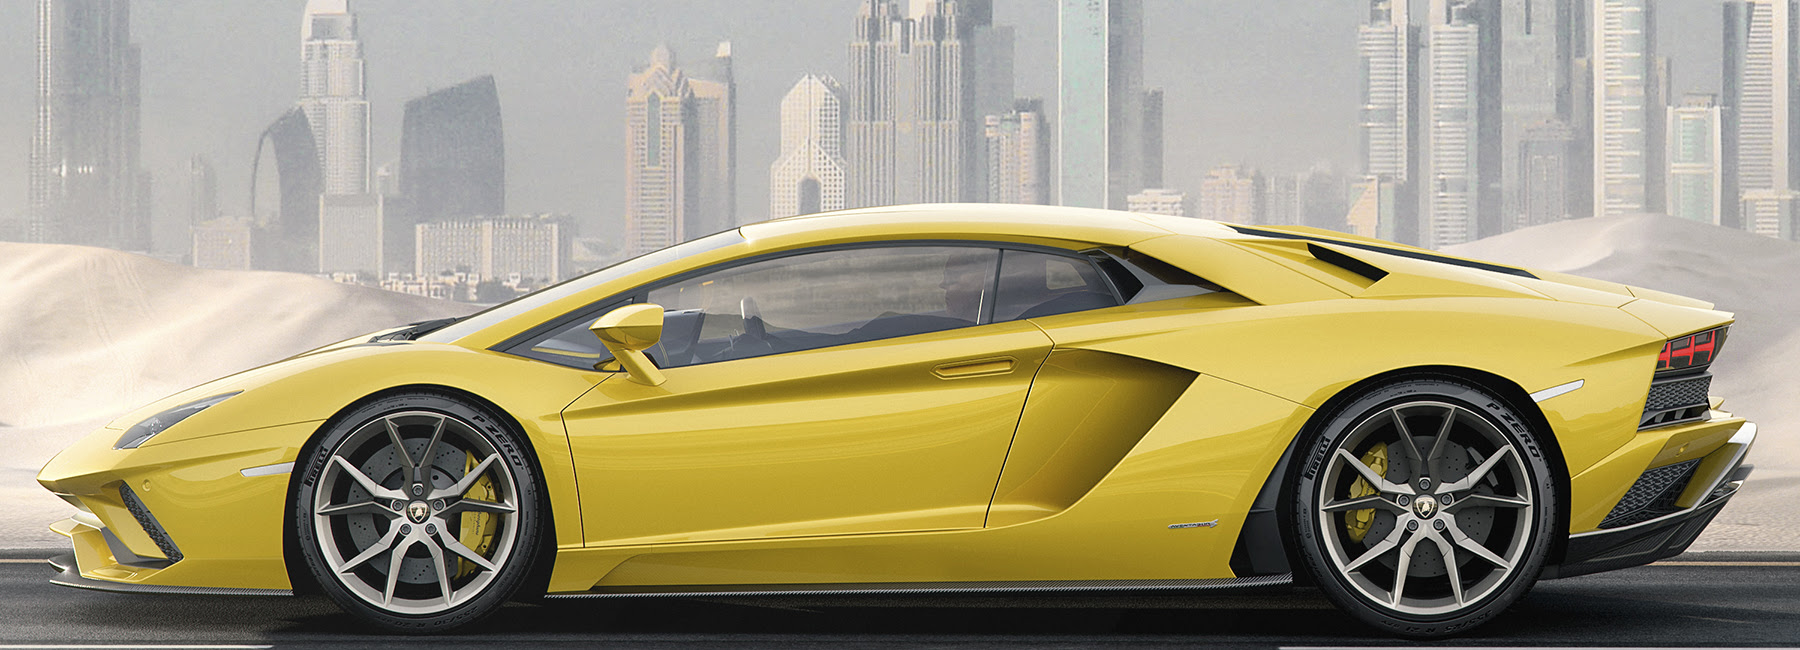 lamborghini aventador S is a supersleek 740 hp monster